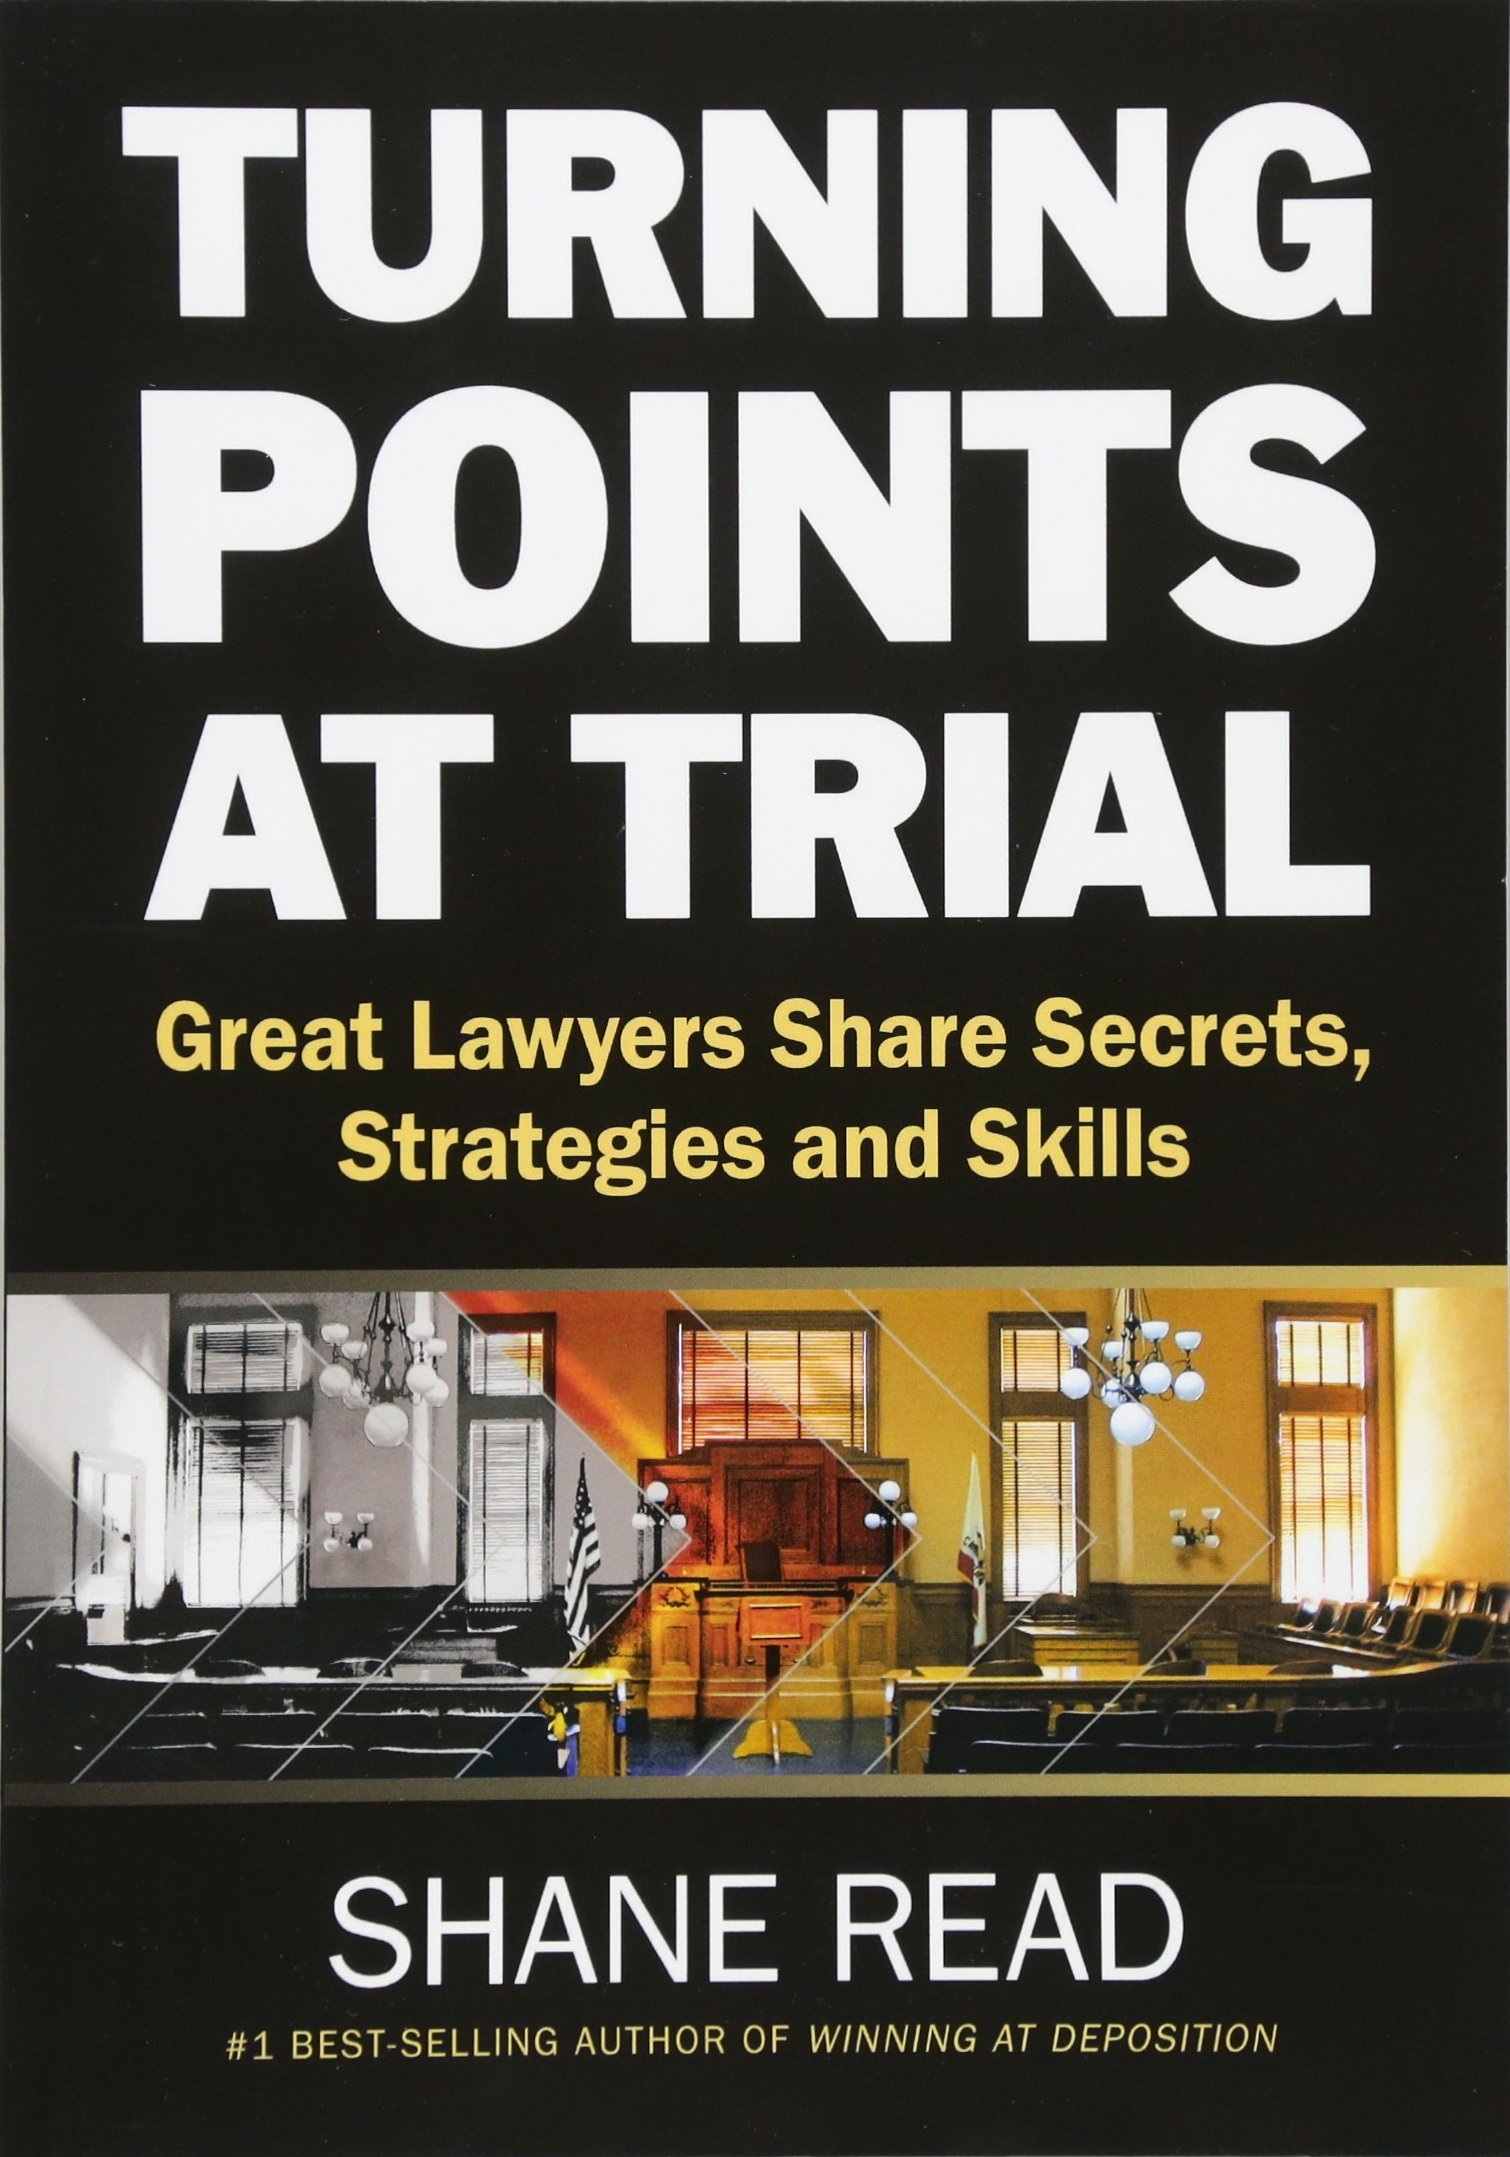 Image OfTurning Points At Trial: Great Lawyers Share Secrets, Strategies And Skills